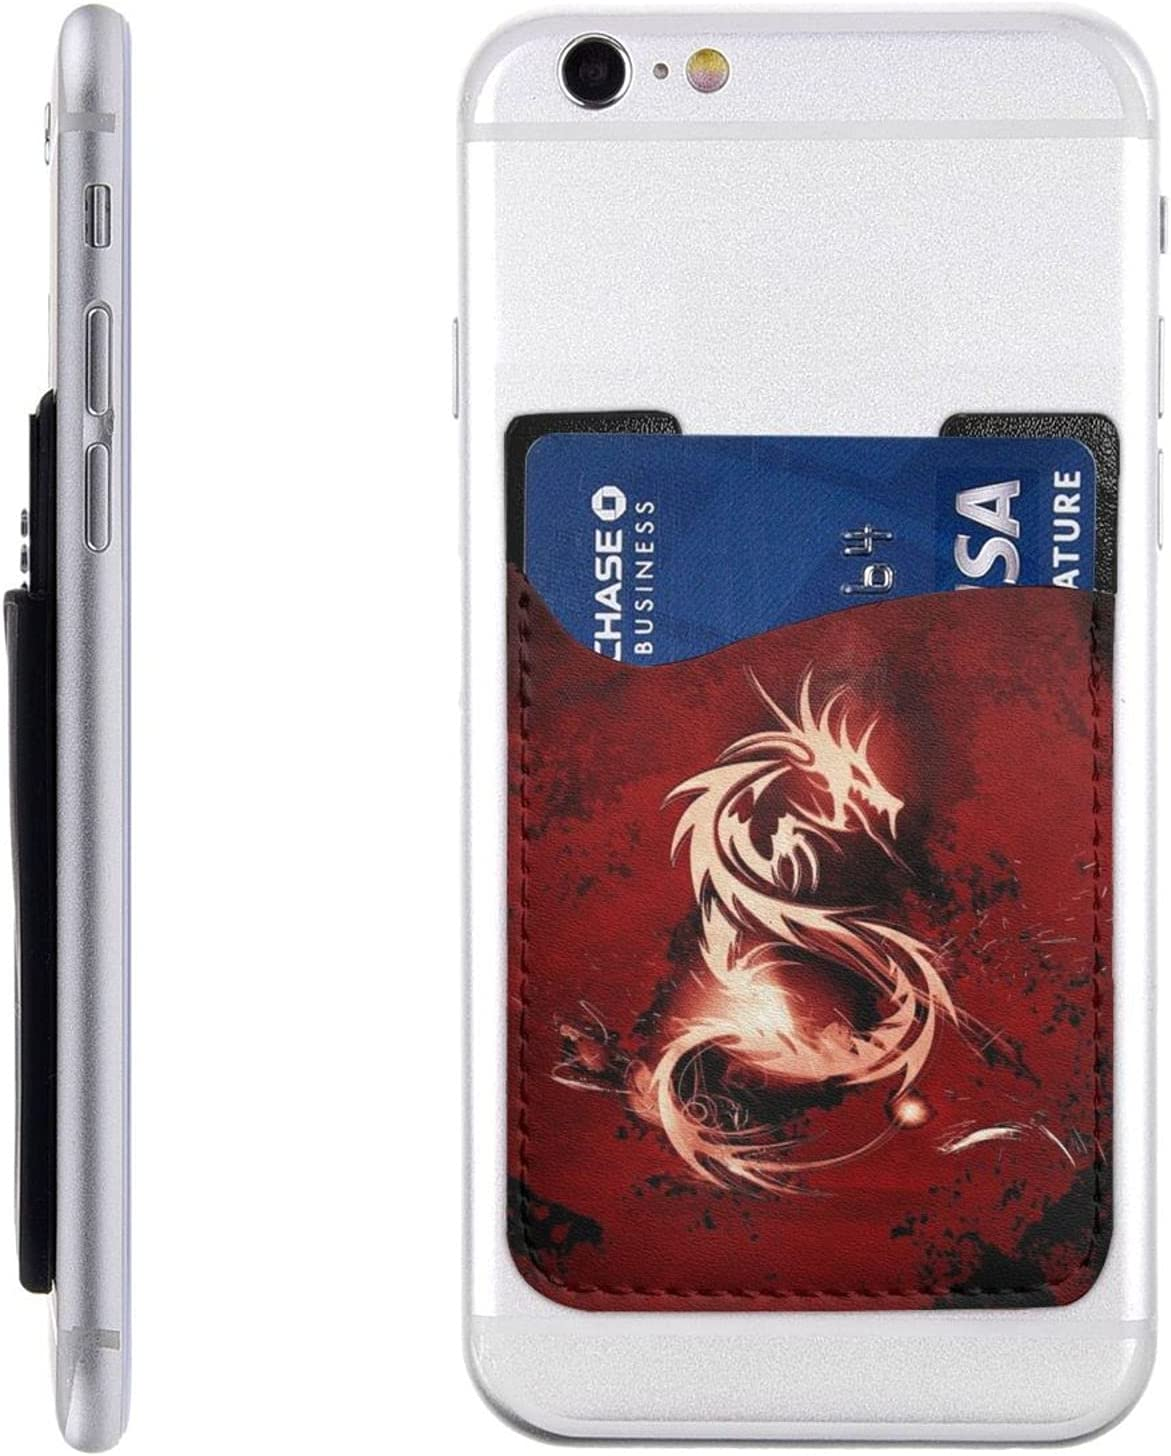 Blood Red Dragon Direct stock discount Phone Card Sales results No. 1 Wall Cell Holder Stick On